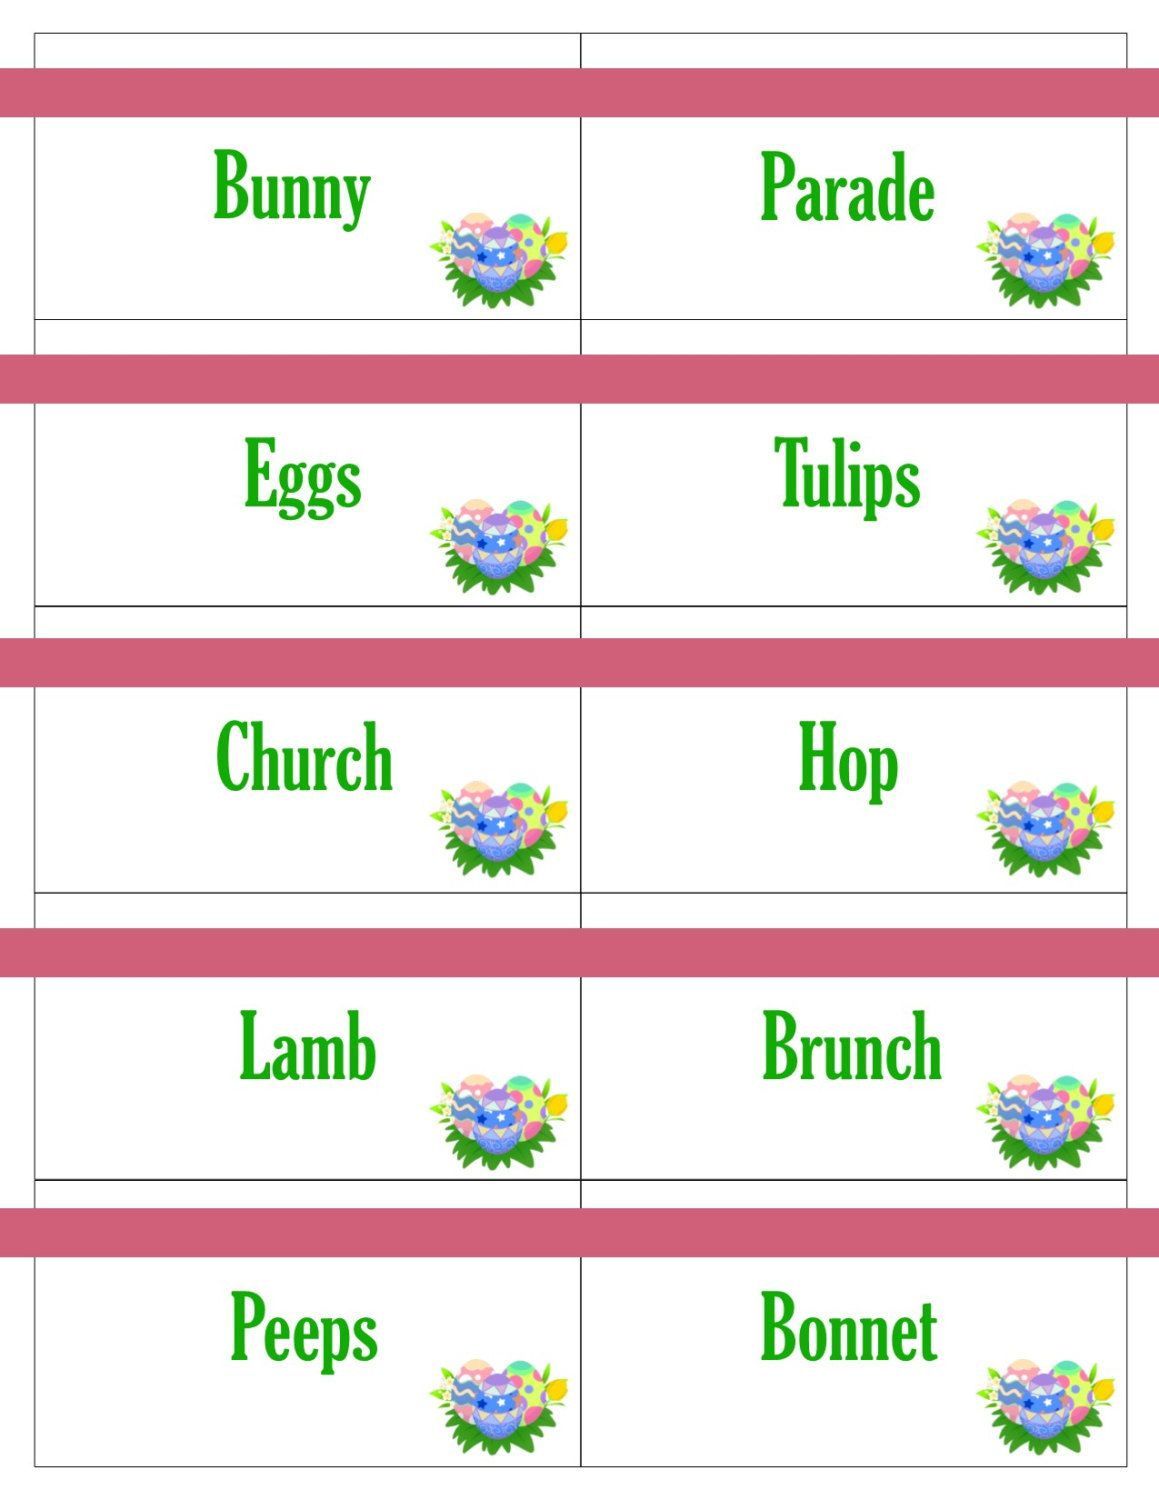 Printable Easter Game Cards For Pictionary, Charades, Hangman And 20 - Free Printable Pictionary Cards